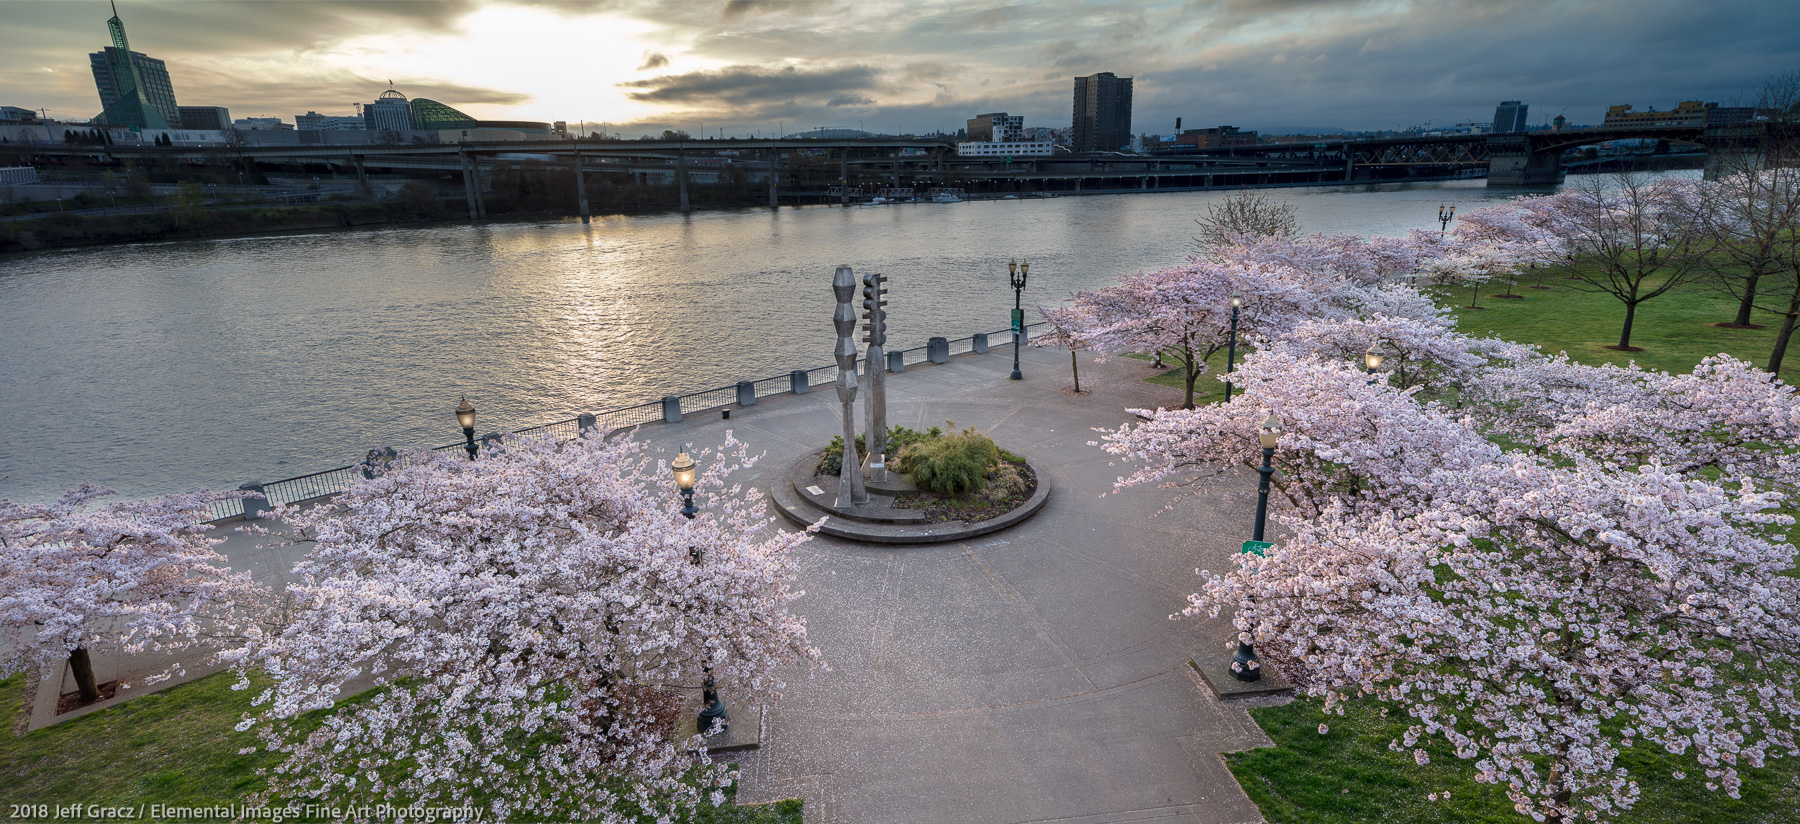 Portland Cherry Blossoms at Sunrise | Portland | OR | USA - © 2018 Jeff Gracz / Elemental Images Fine Art Photography - All Rights Reserved Worldwide